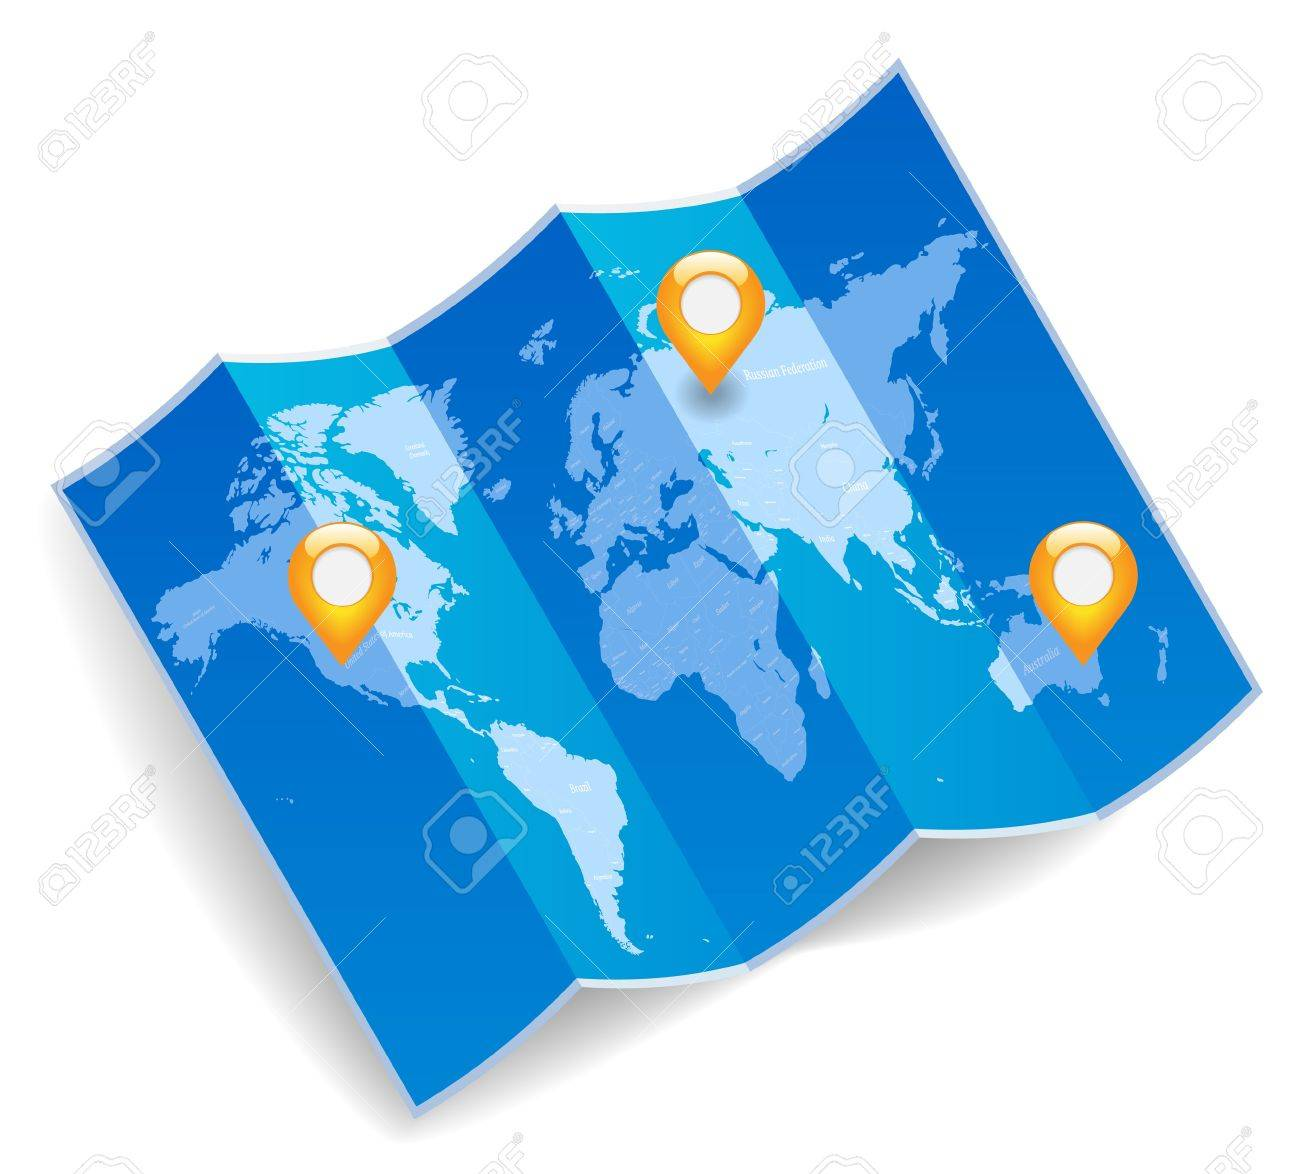 Blue folded world map with gps marks royalty free cliparts vectors blue folded world map with gps marks stock vector 14202611 gumiabroncs Image collections